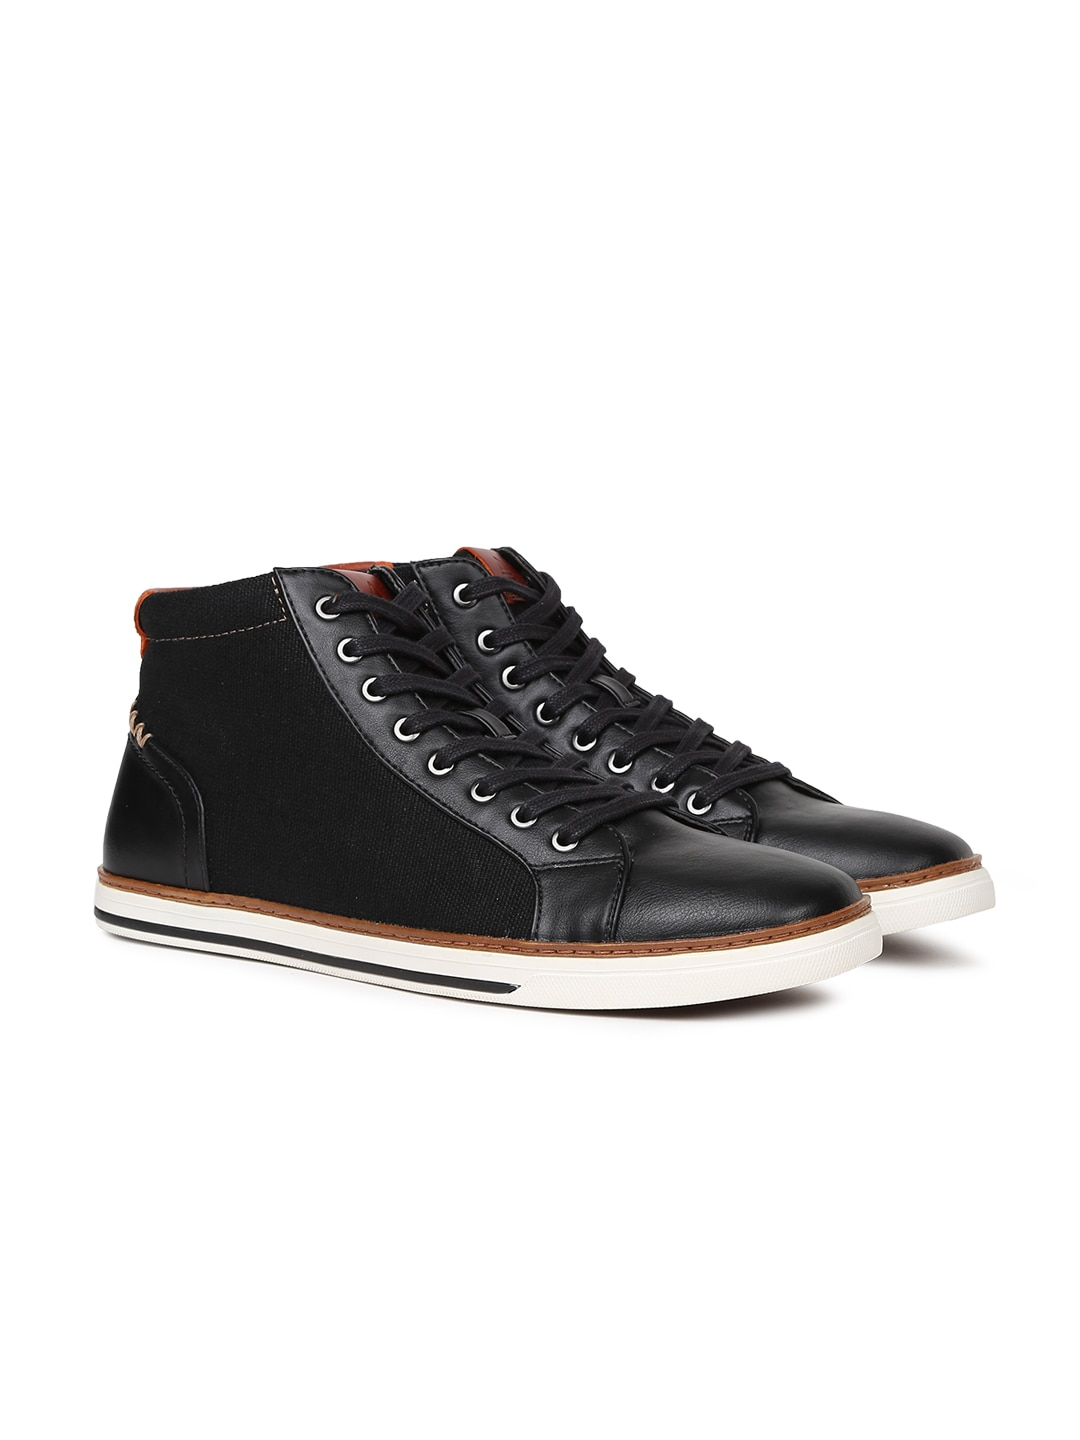 32b47392f6d Buy Steve Madden Men Black Quilted Mid Top Sneakers - Casual Shoes ...